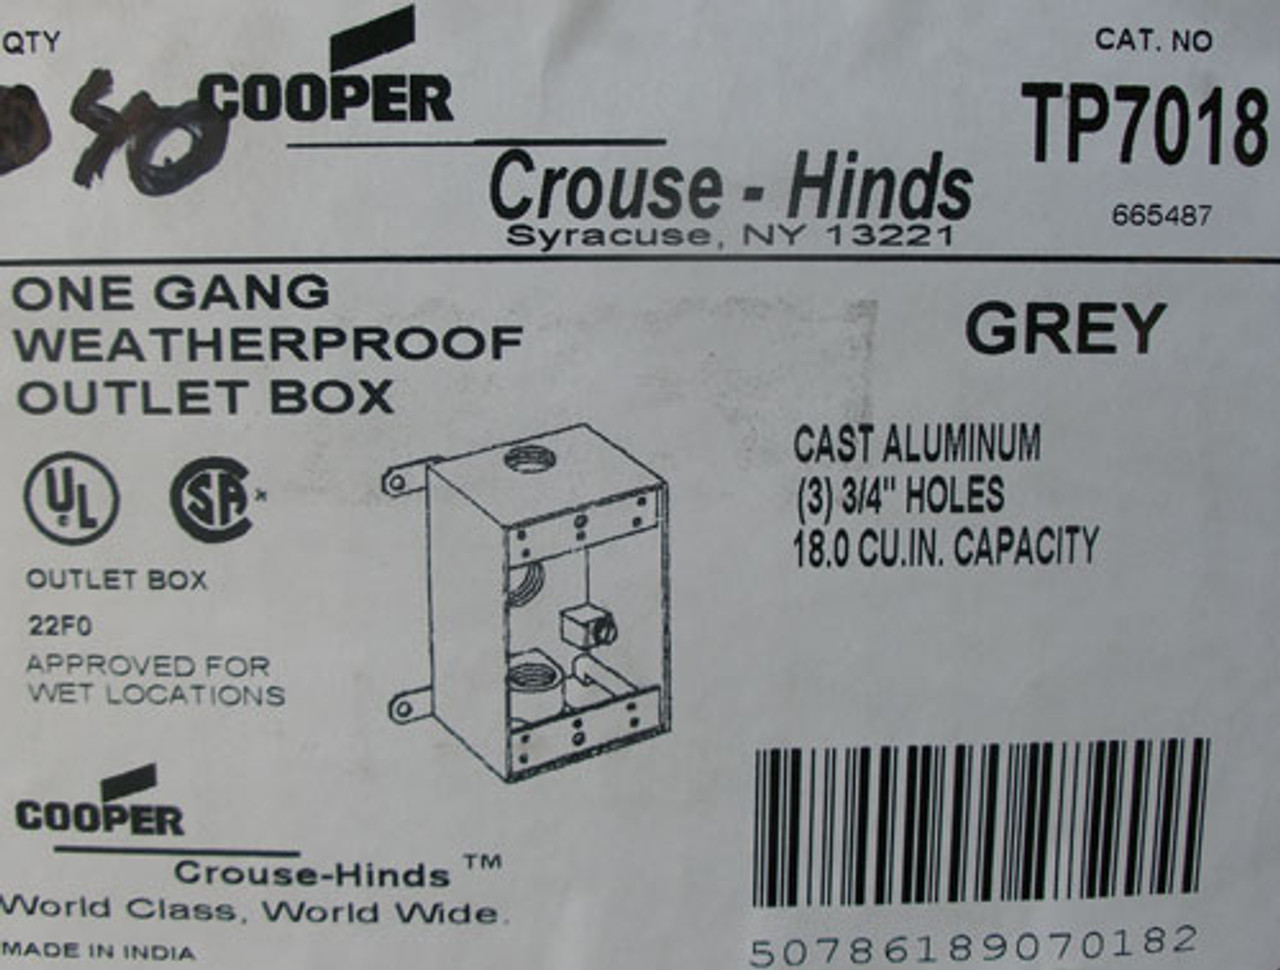 2Pc Cooper Crouse-Hinds TP7018 1G WP-3 3/4 Holes Outlet Box Grey - New